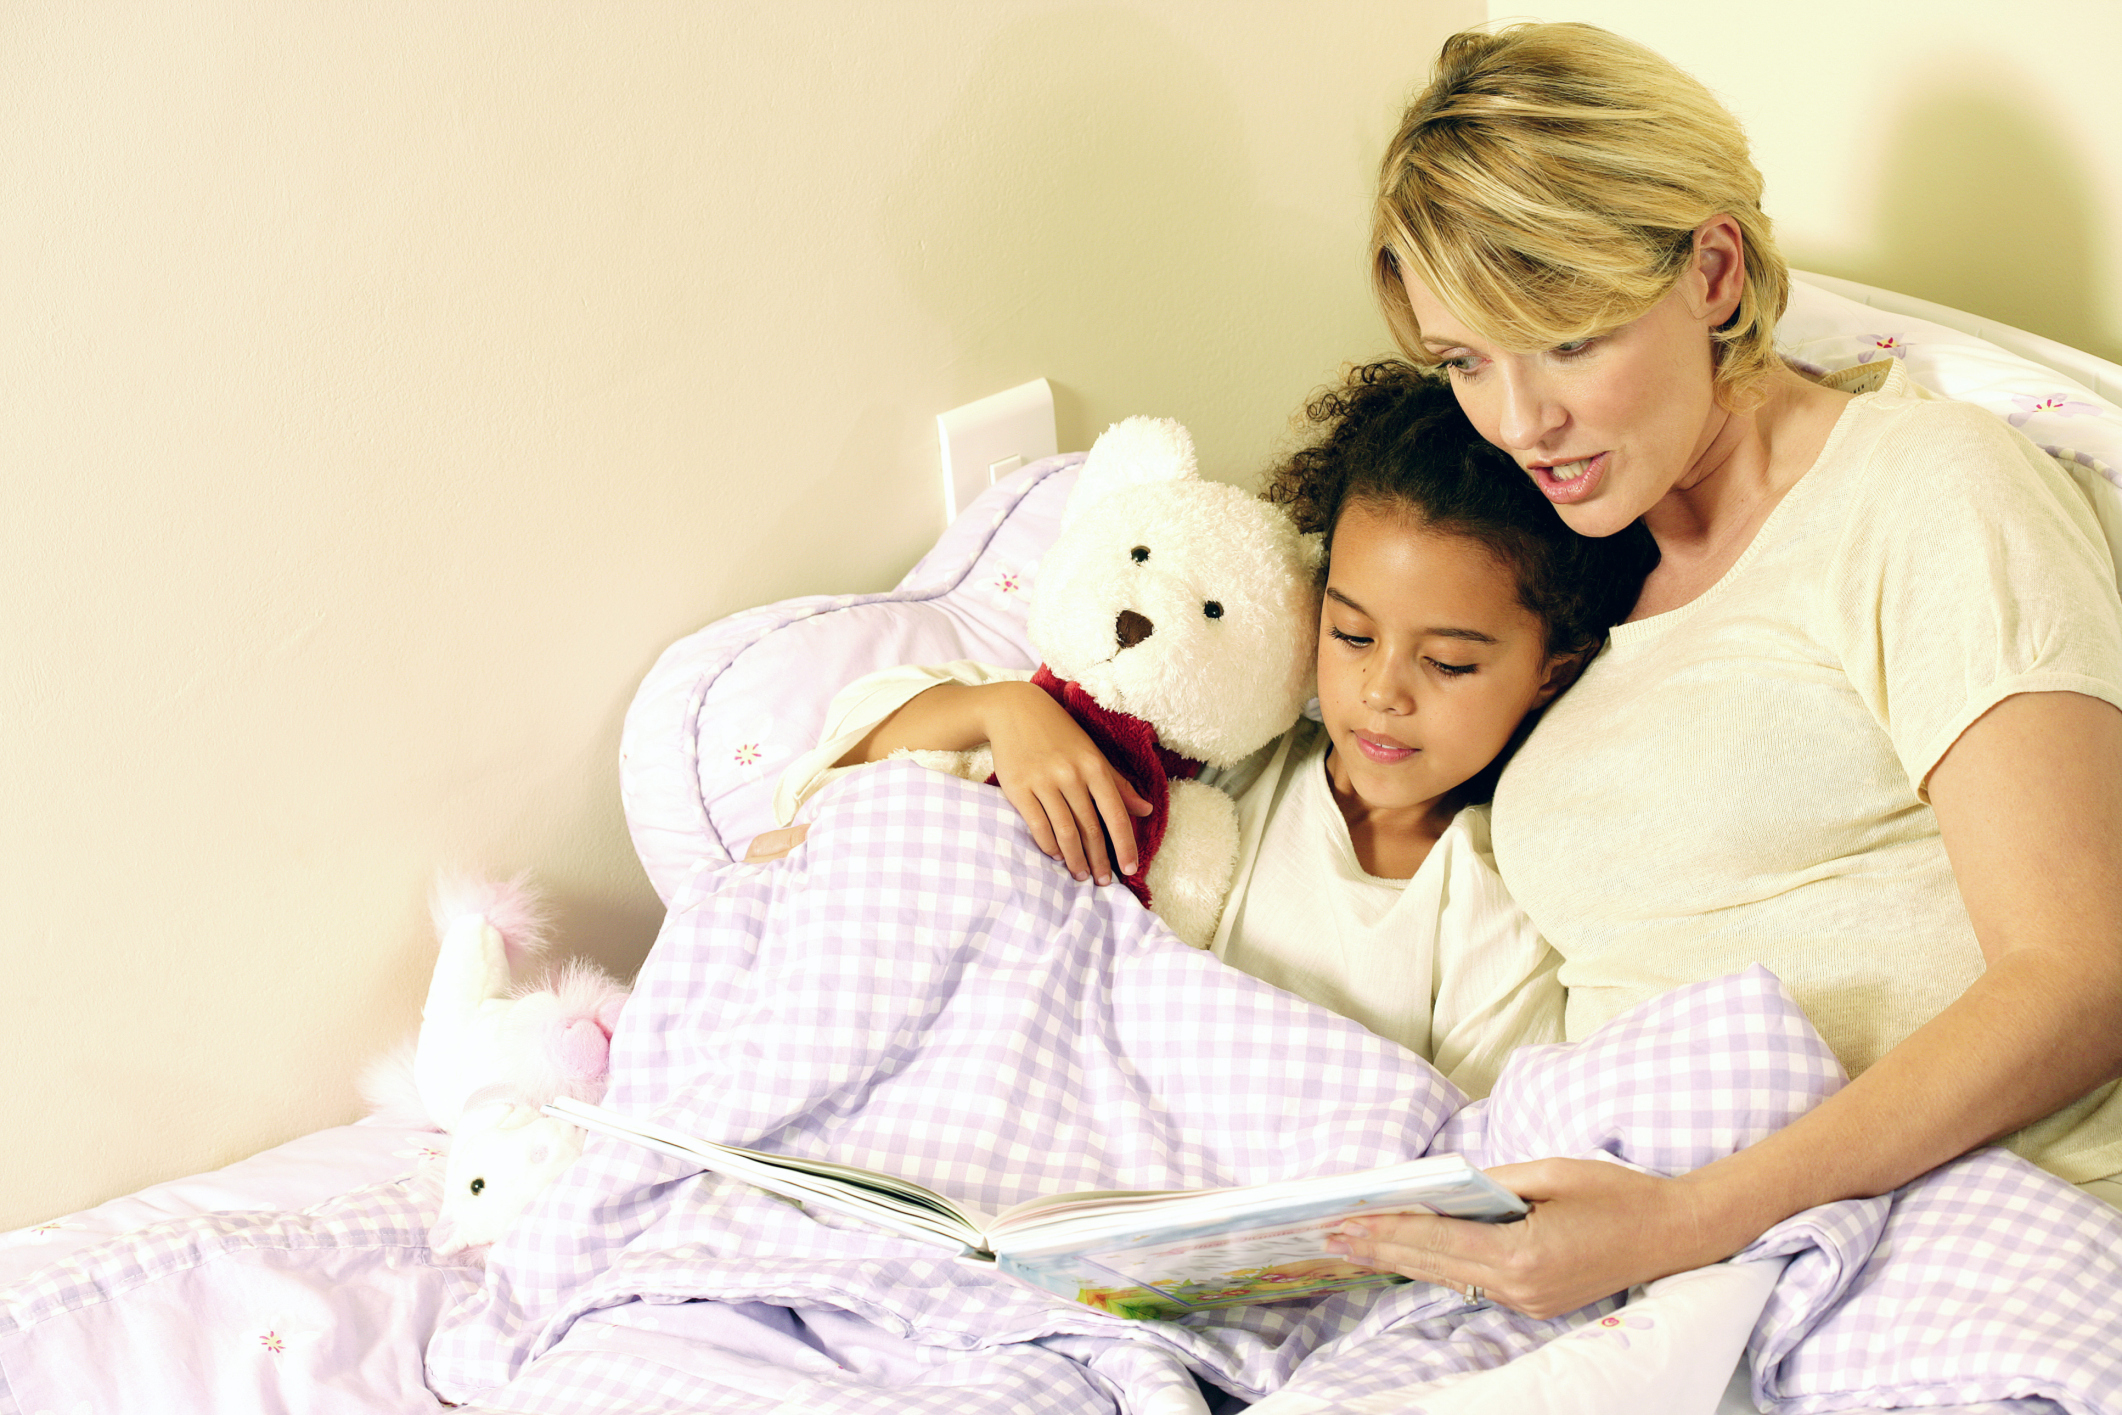 bedtime sleep and child When will your child sleep through the night how many naps are normal now  stick to a bedtime routine and sleep schedule, make sure your kids understand the rules and be consistent about .